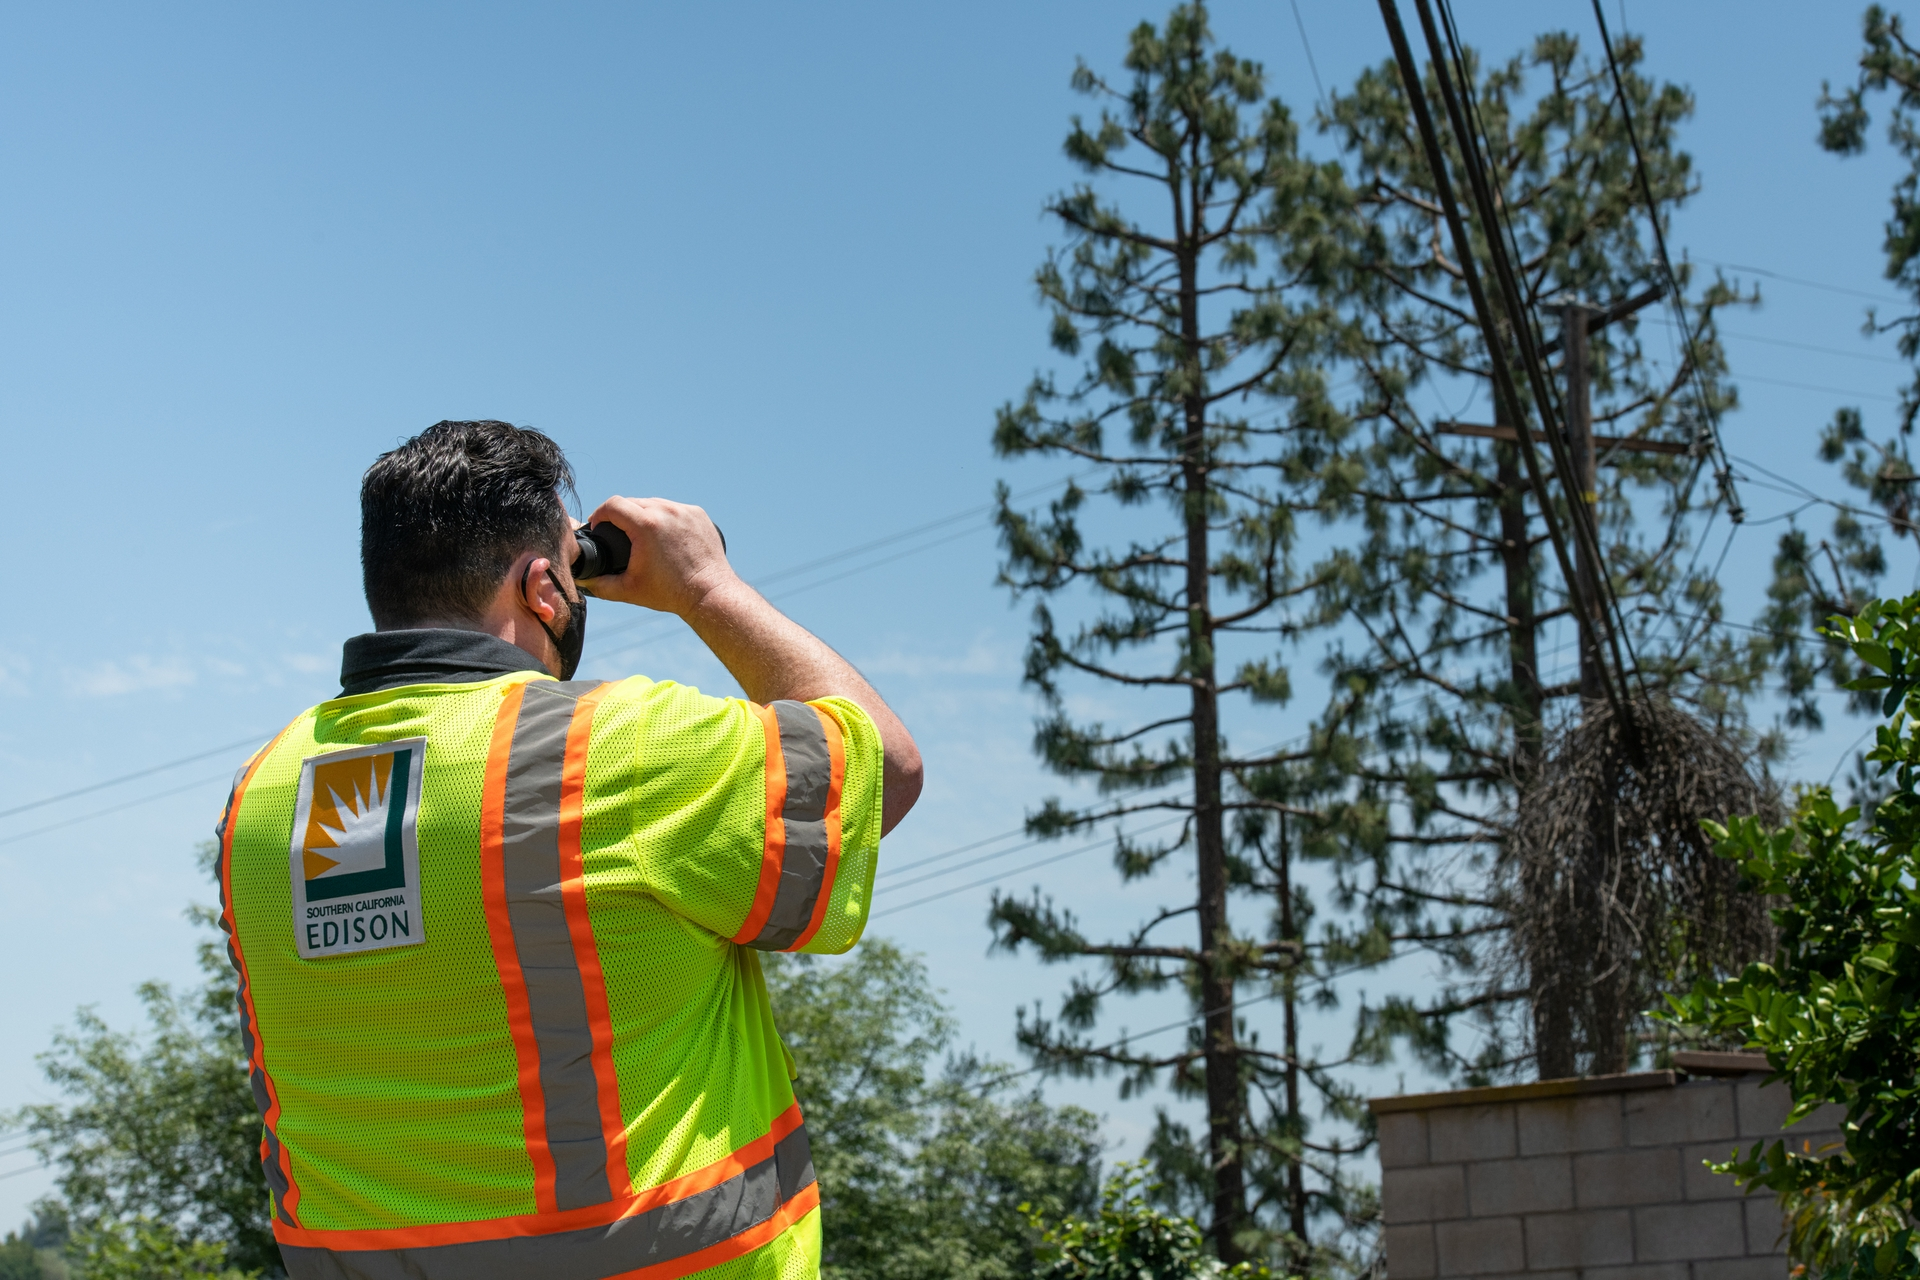 With increased wildfire mitigation efforts across SCE's service area, more inspections are taking place.